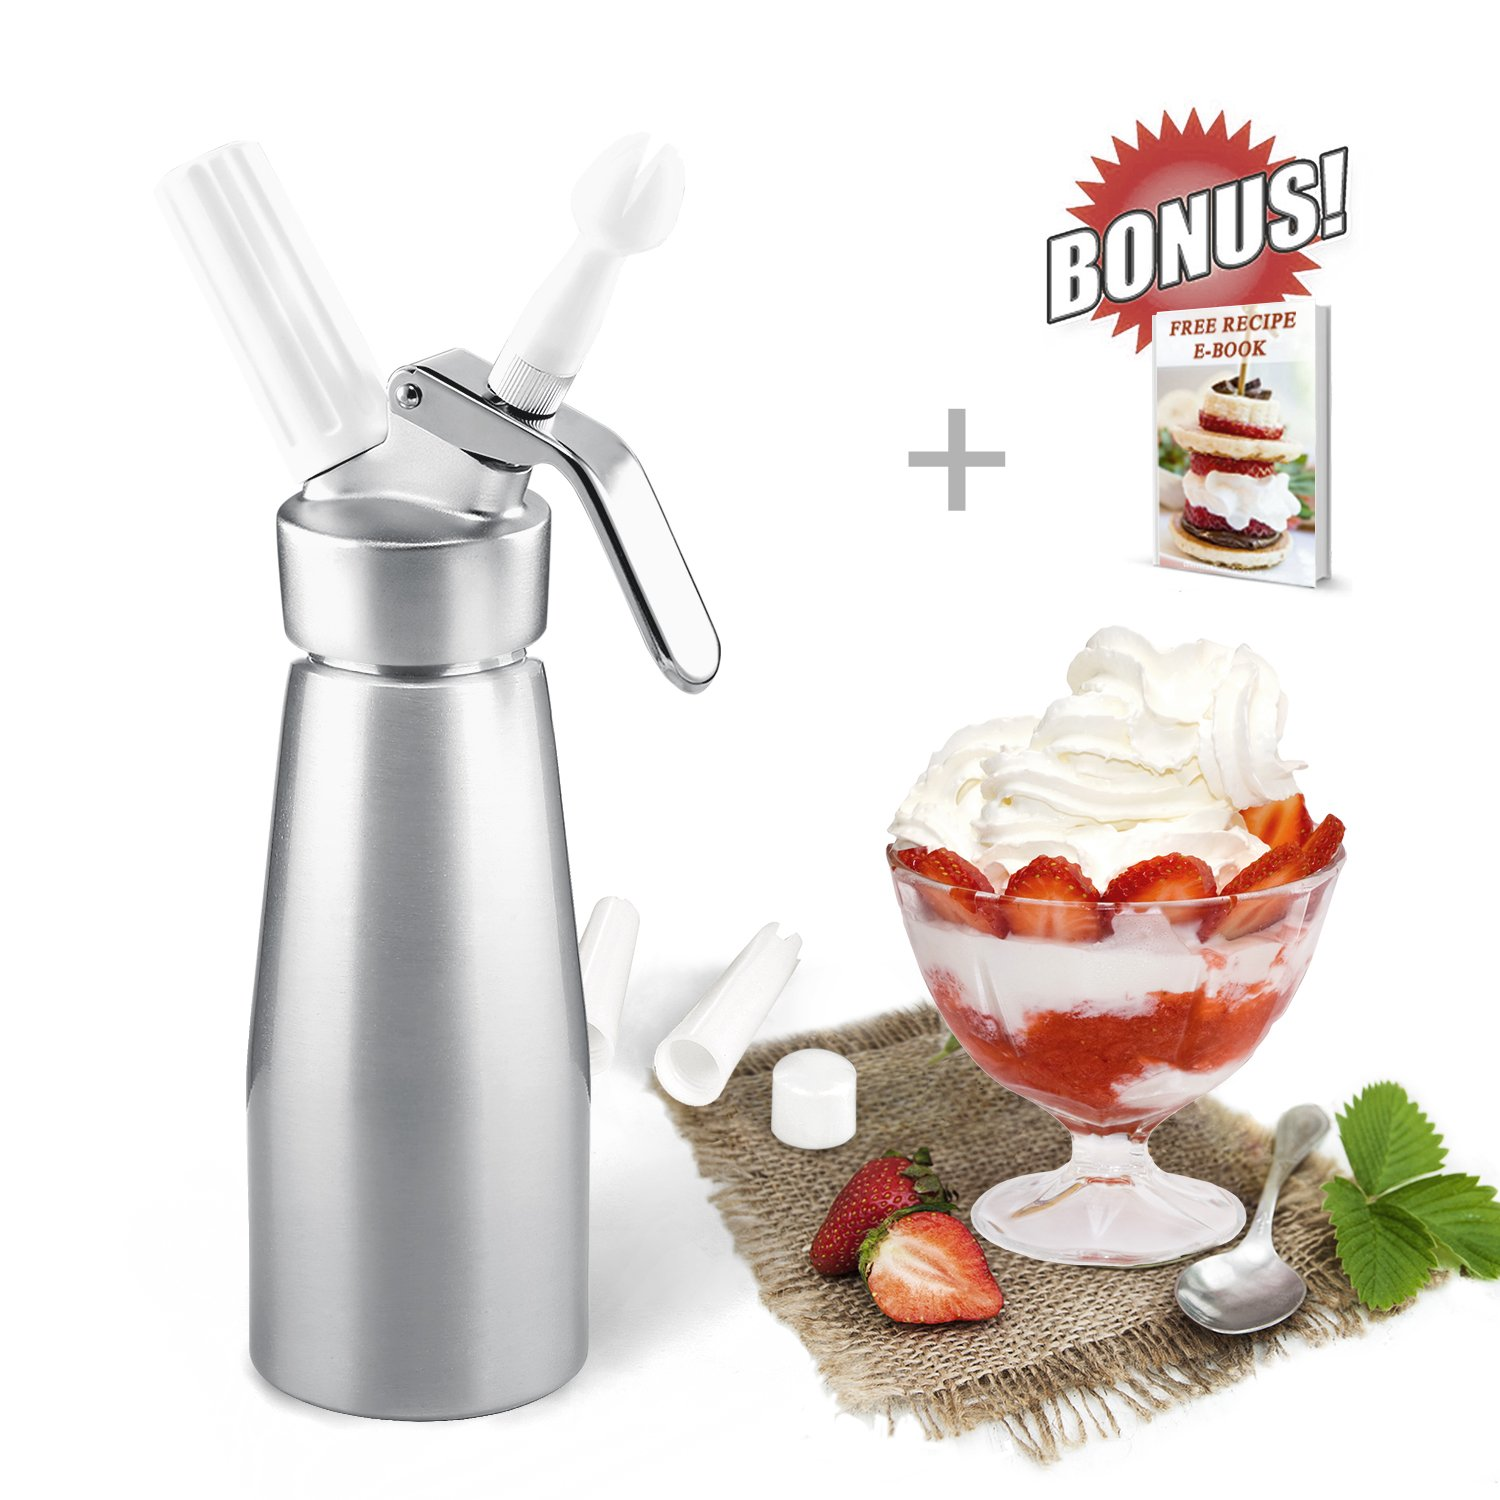 ZOEMO Professional Whipped Cream Dispenser 250ml - Cream Whipper With Sturdy Aluminum Body And Head - Half Pint Whipper Creates 2-3 Pints of Fresh Whip Cream